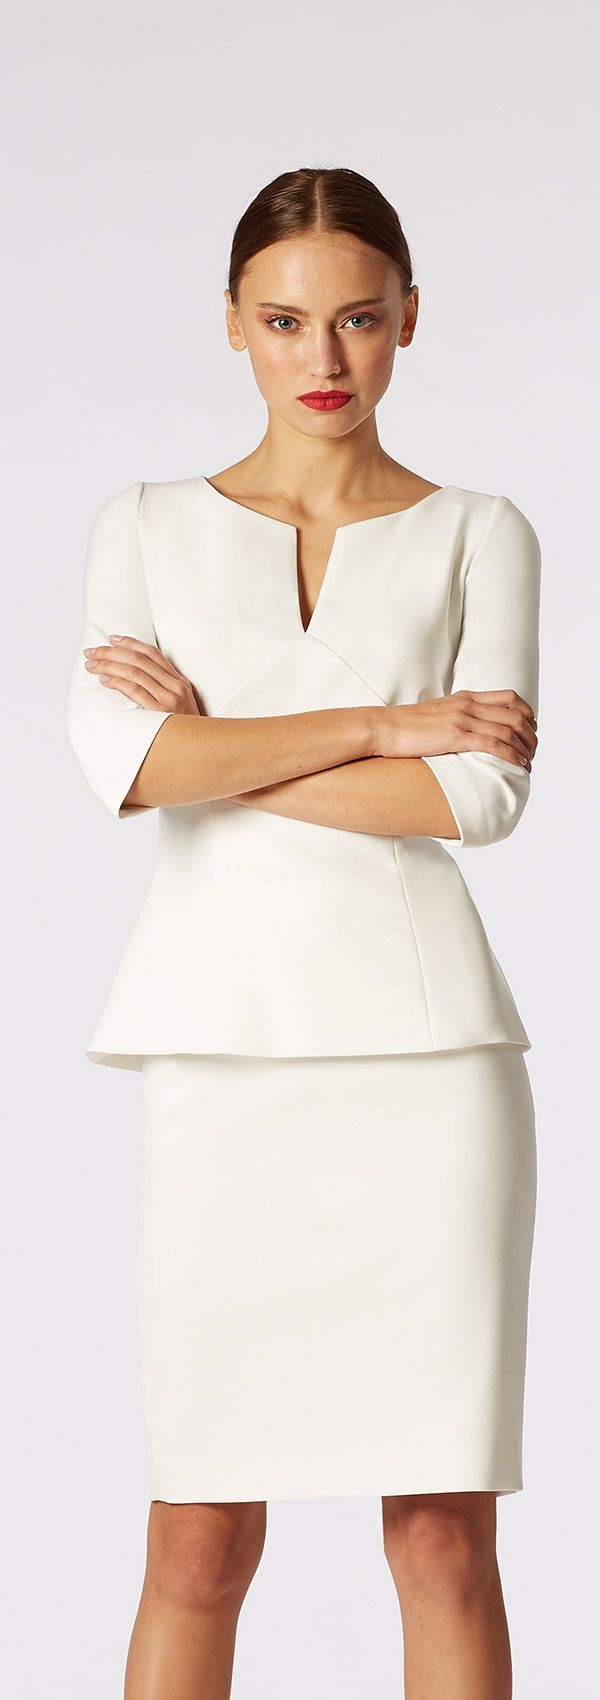 Popular White Women Suits With Black Dress 2013 Summer Work Wear Career Dress